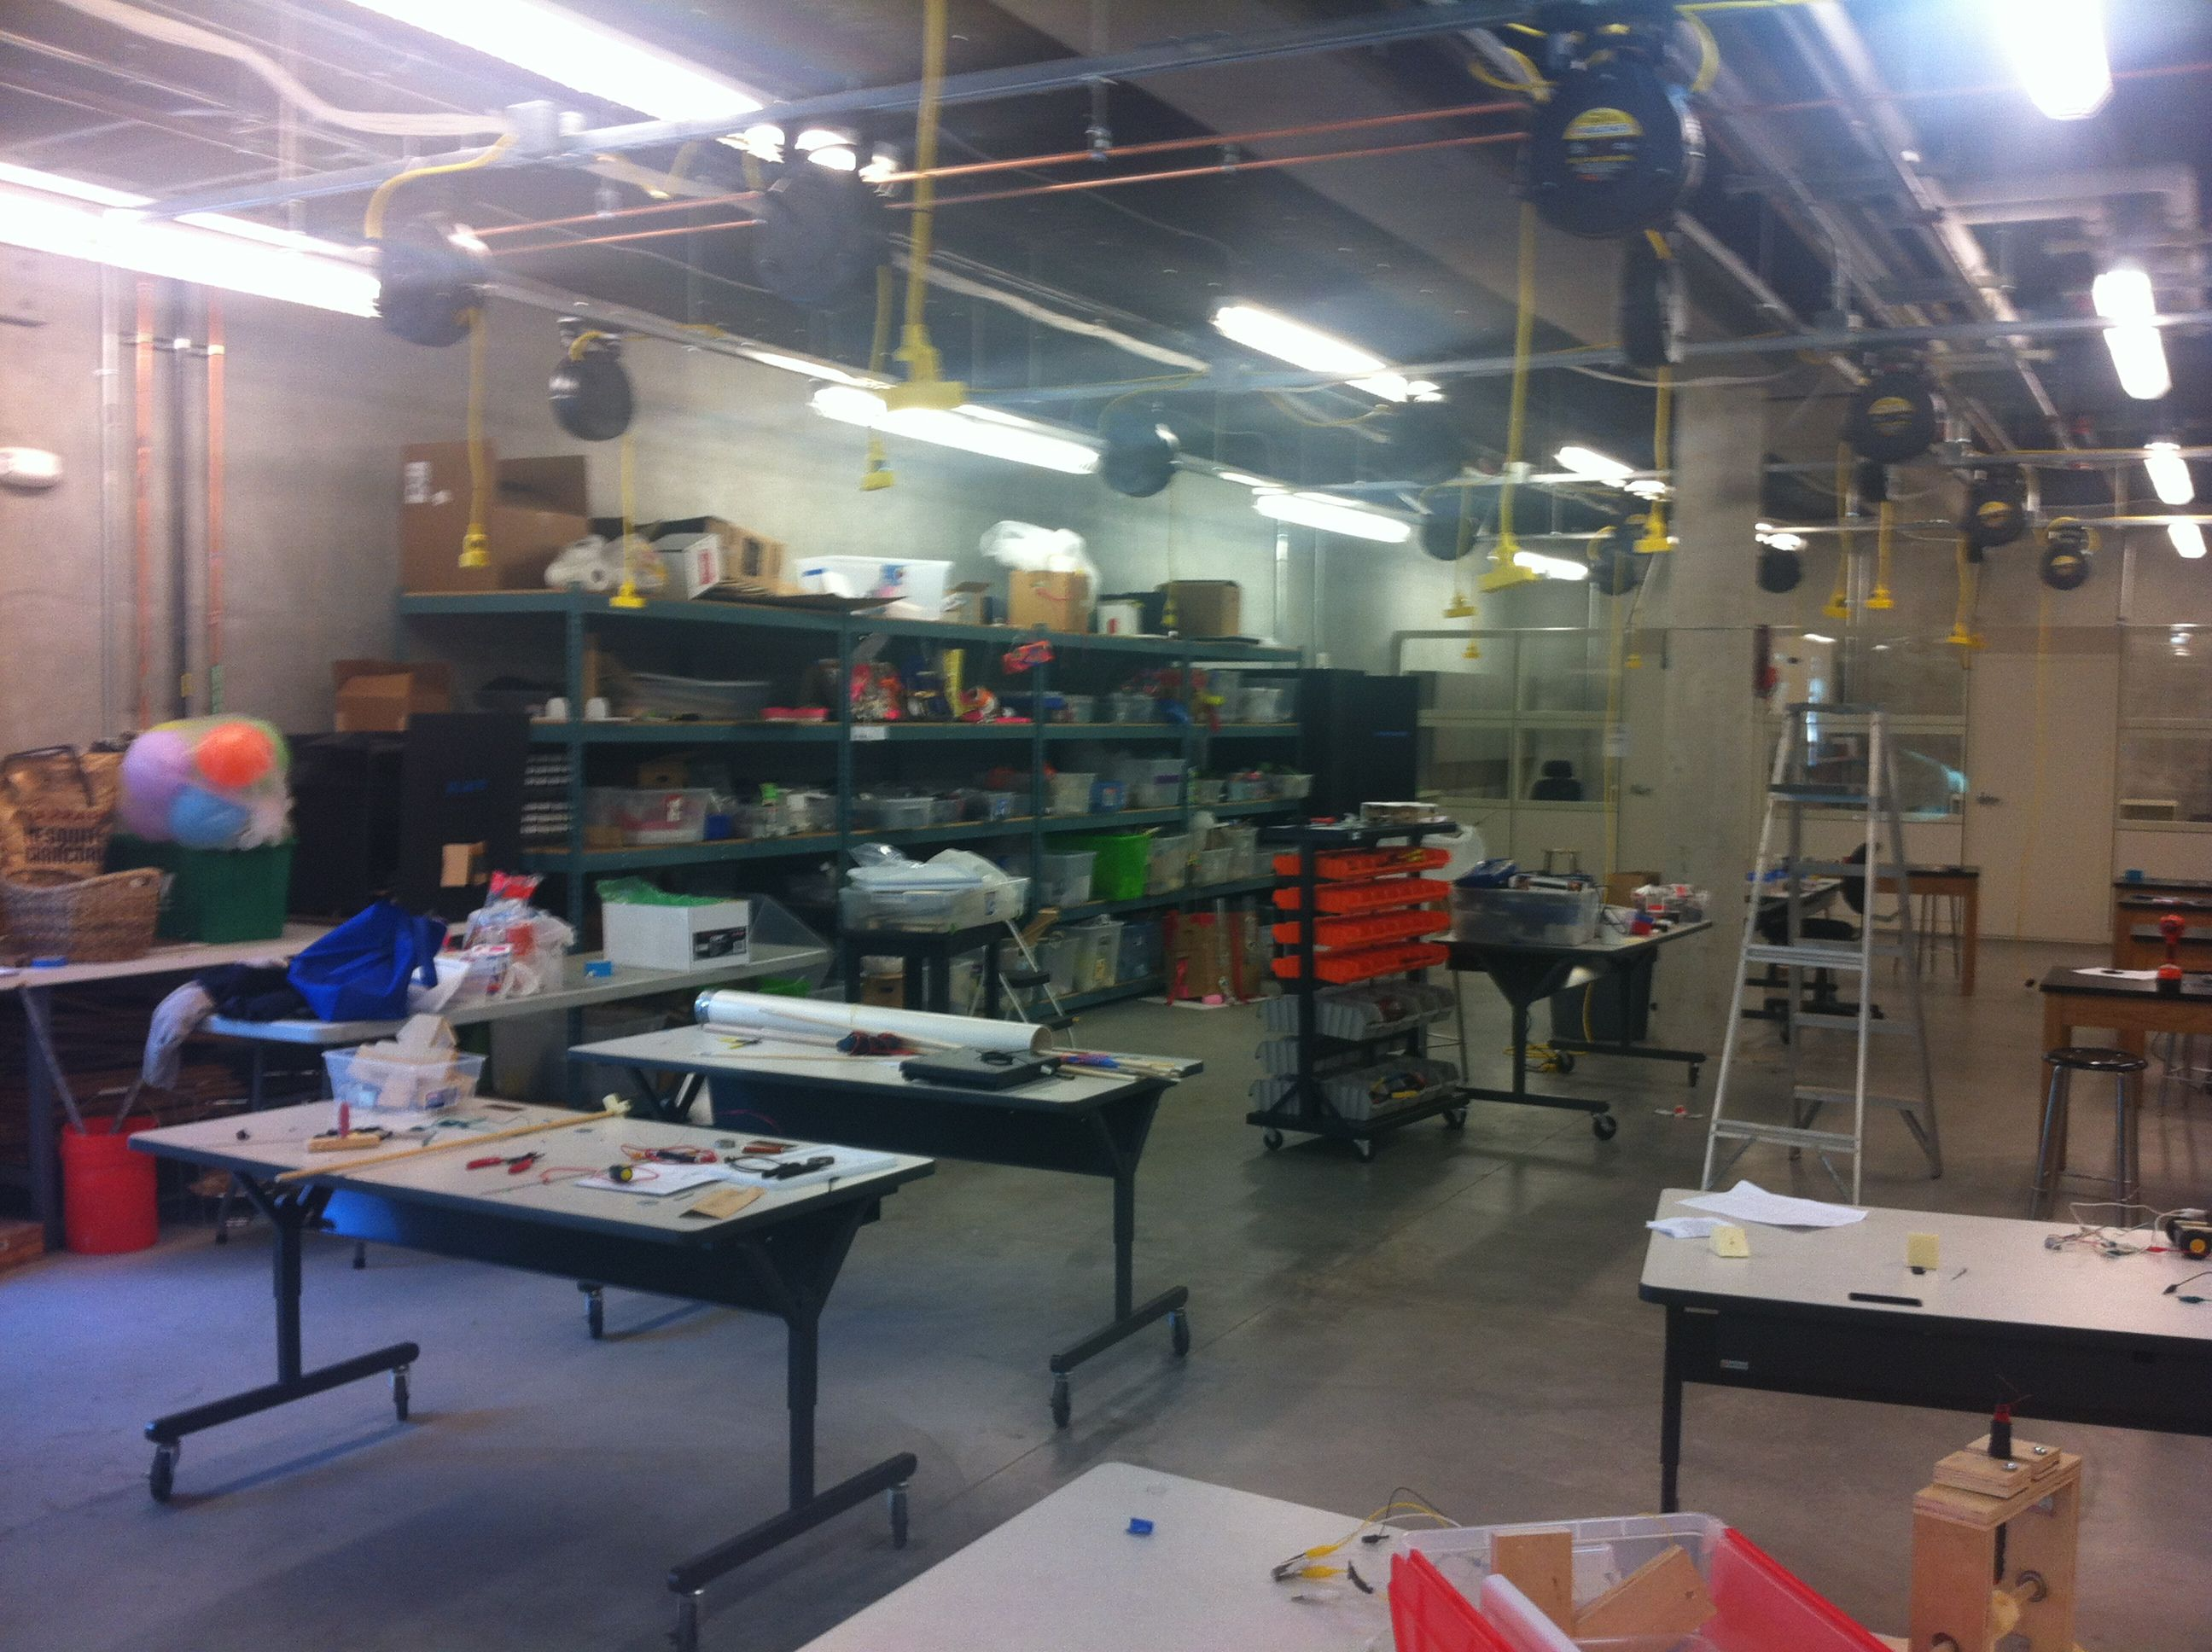 3 Key Qualities for a School Makerspace | Make: